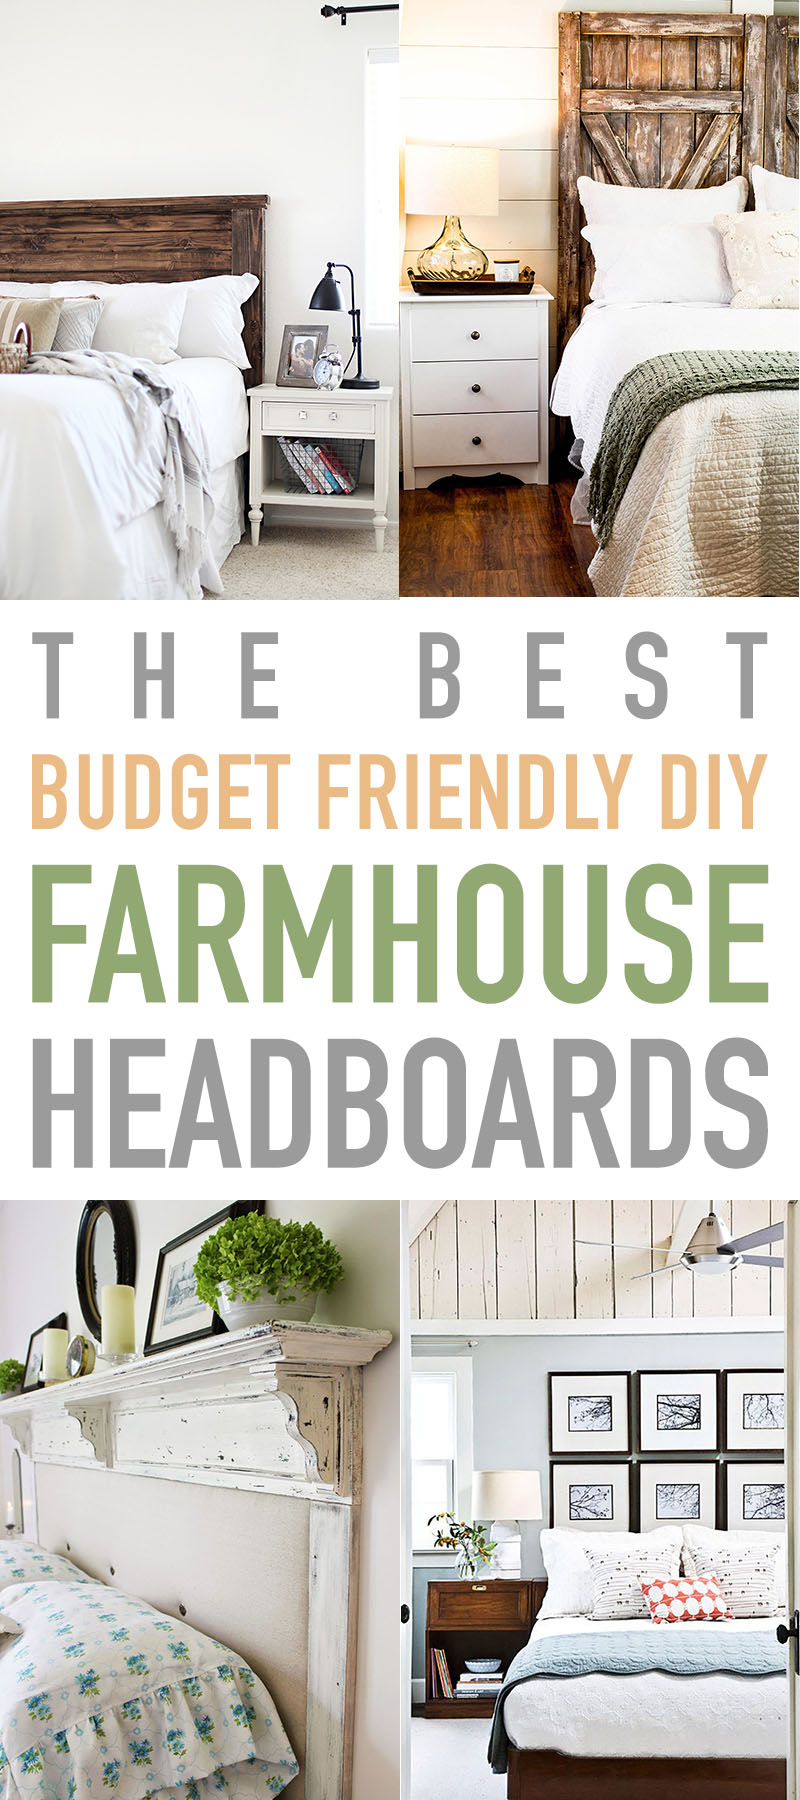 The Best Budget Friendly DIY Farmhouse Headboards